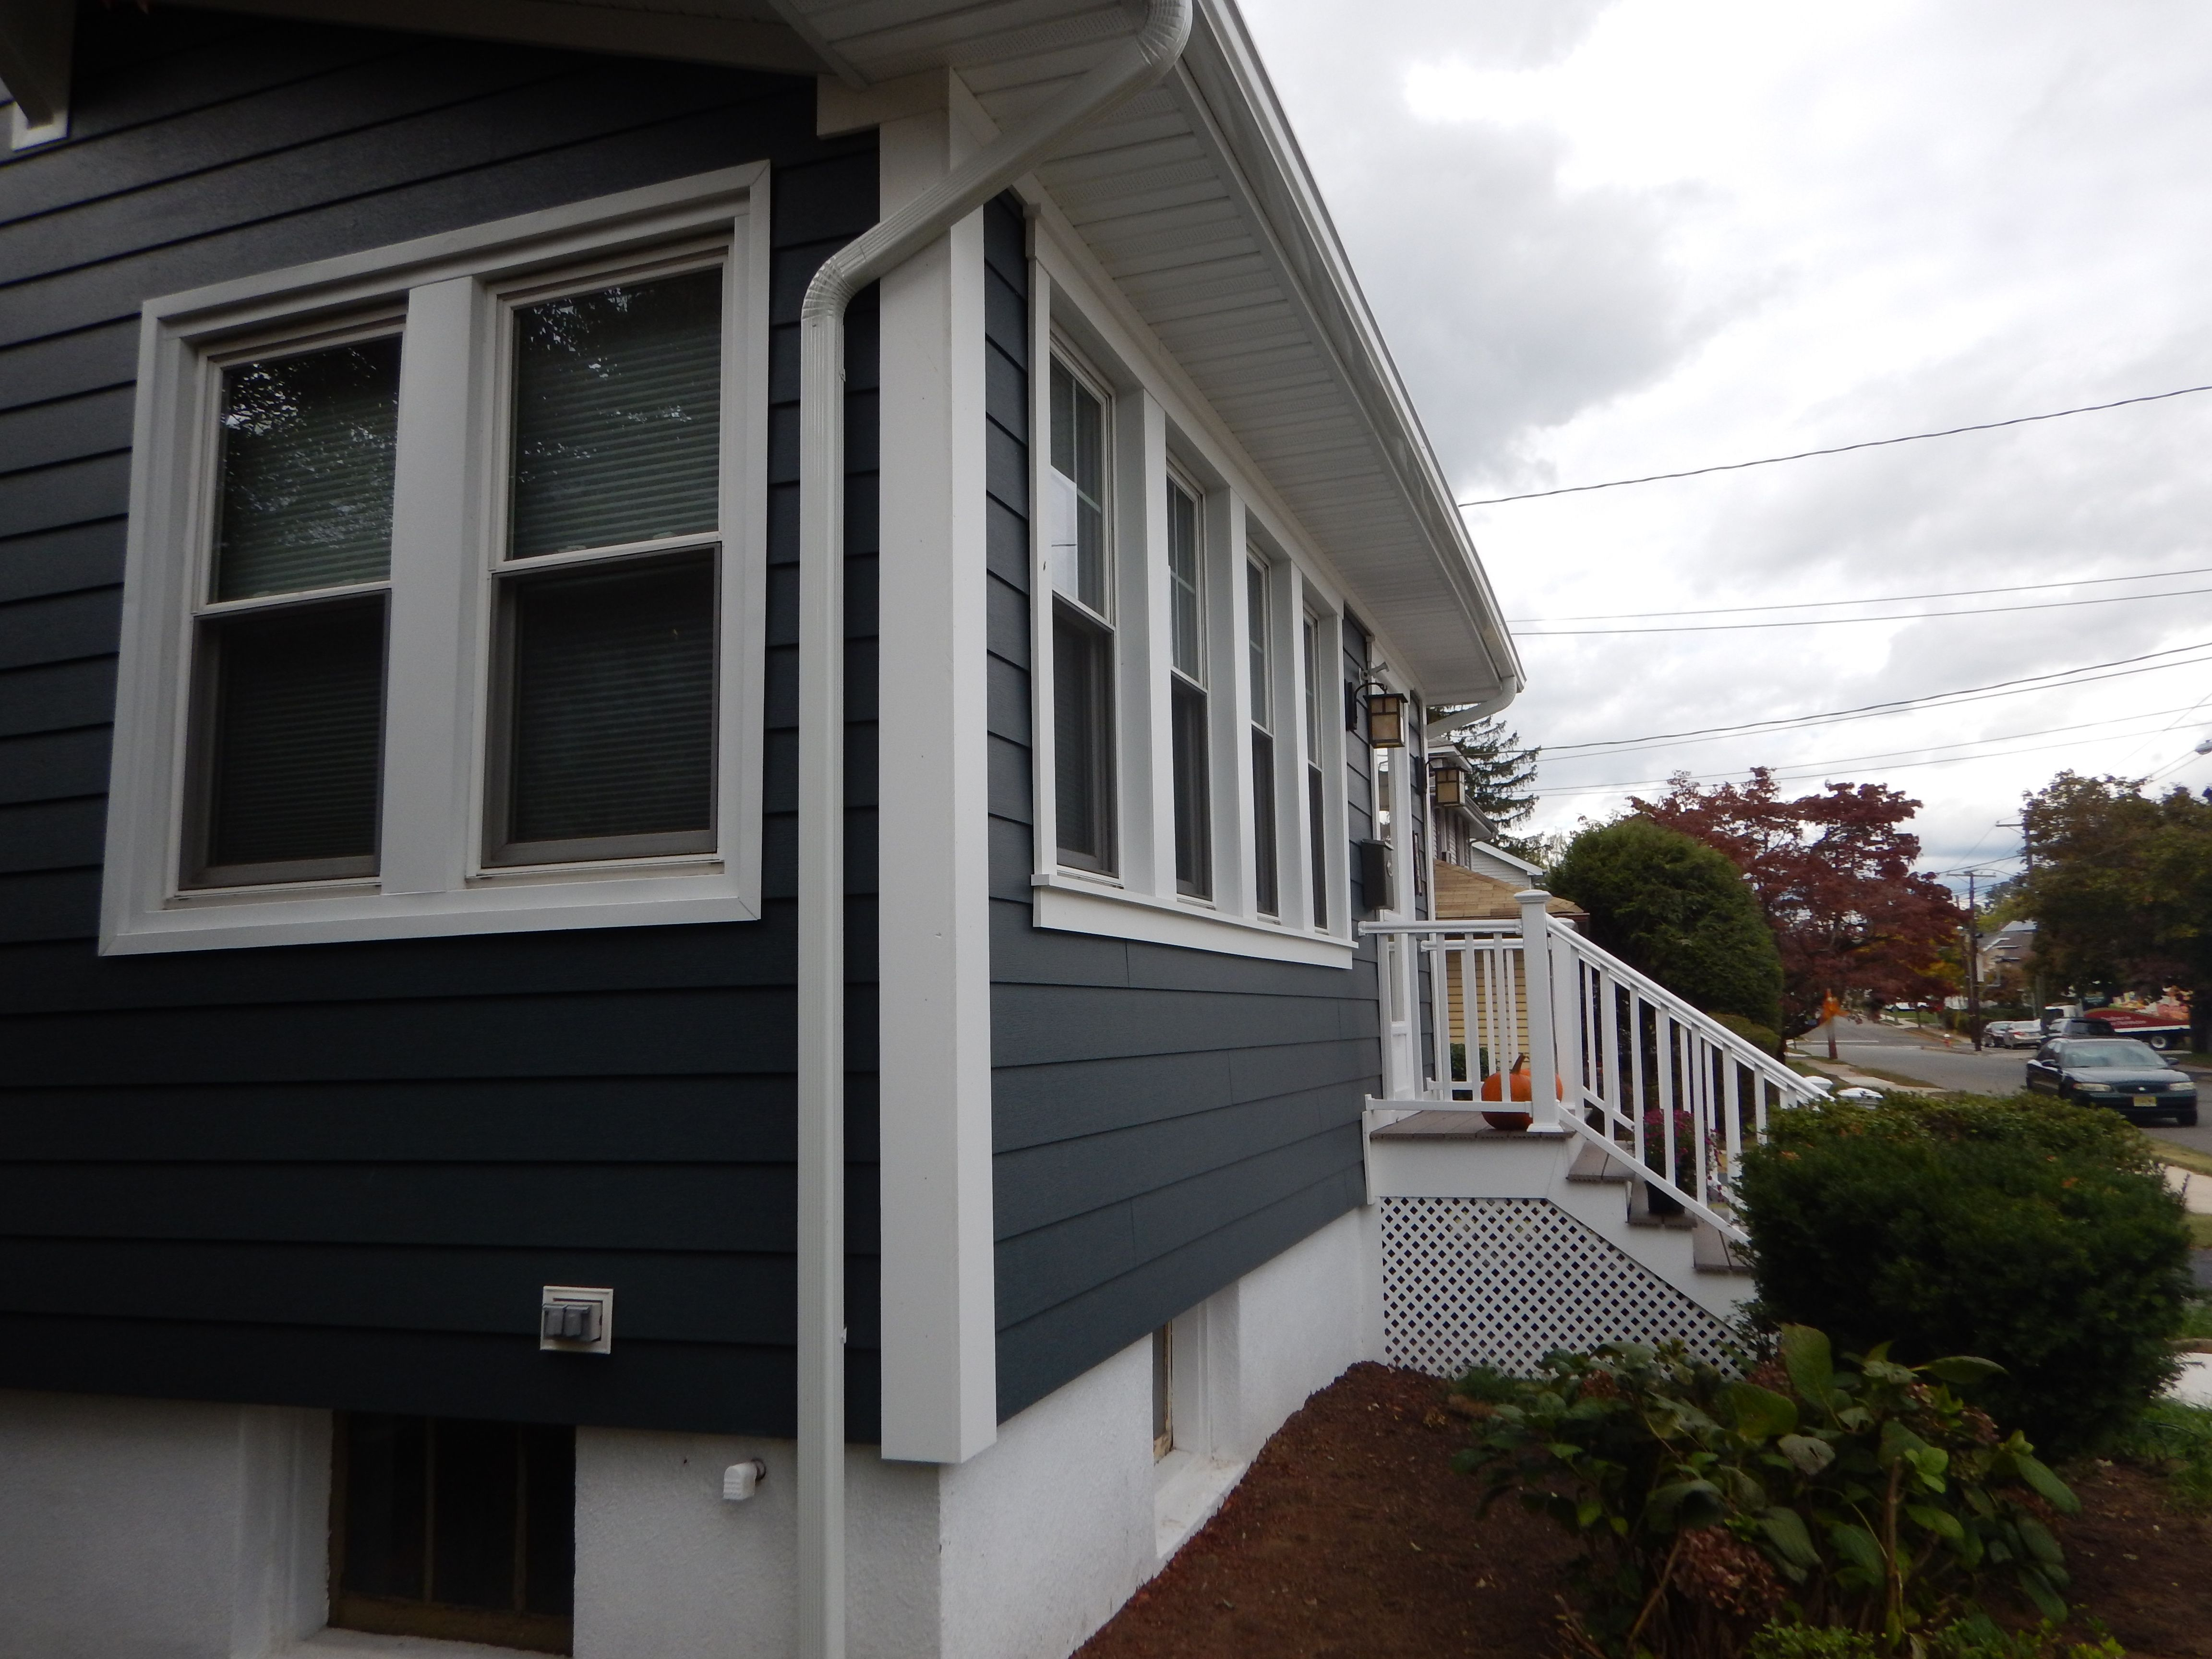 Find A Siding Contractor Passaic Local Sider Passaic Siding Passaic Home Depot Homedepot Depotsiding Siding Contractors Siding Companies Vinyl Siding Repair